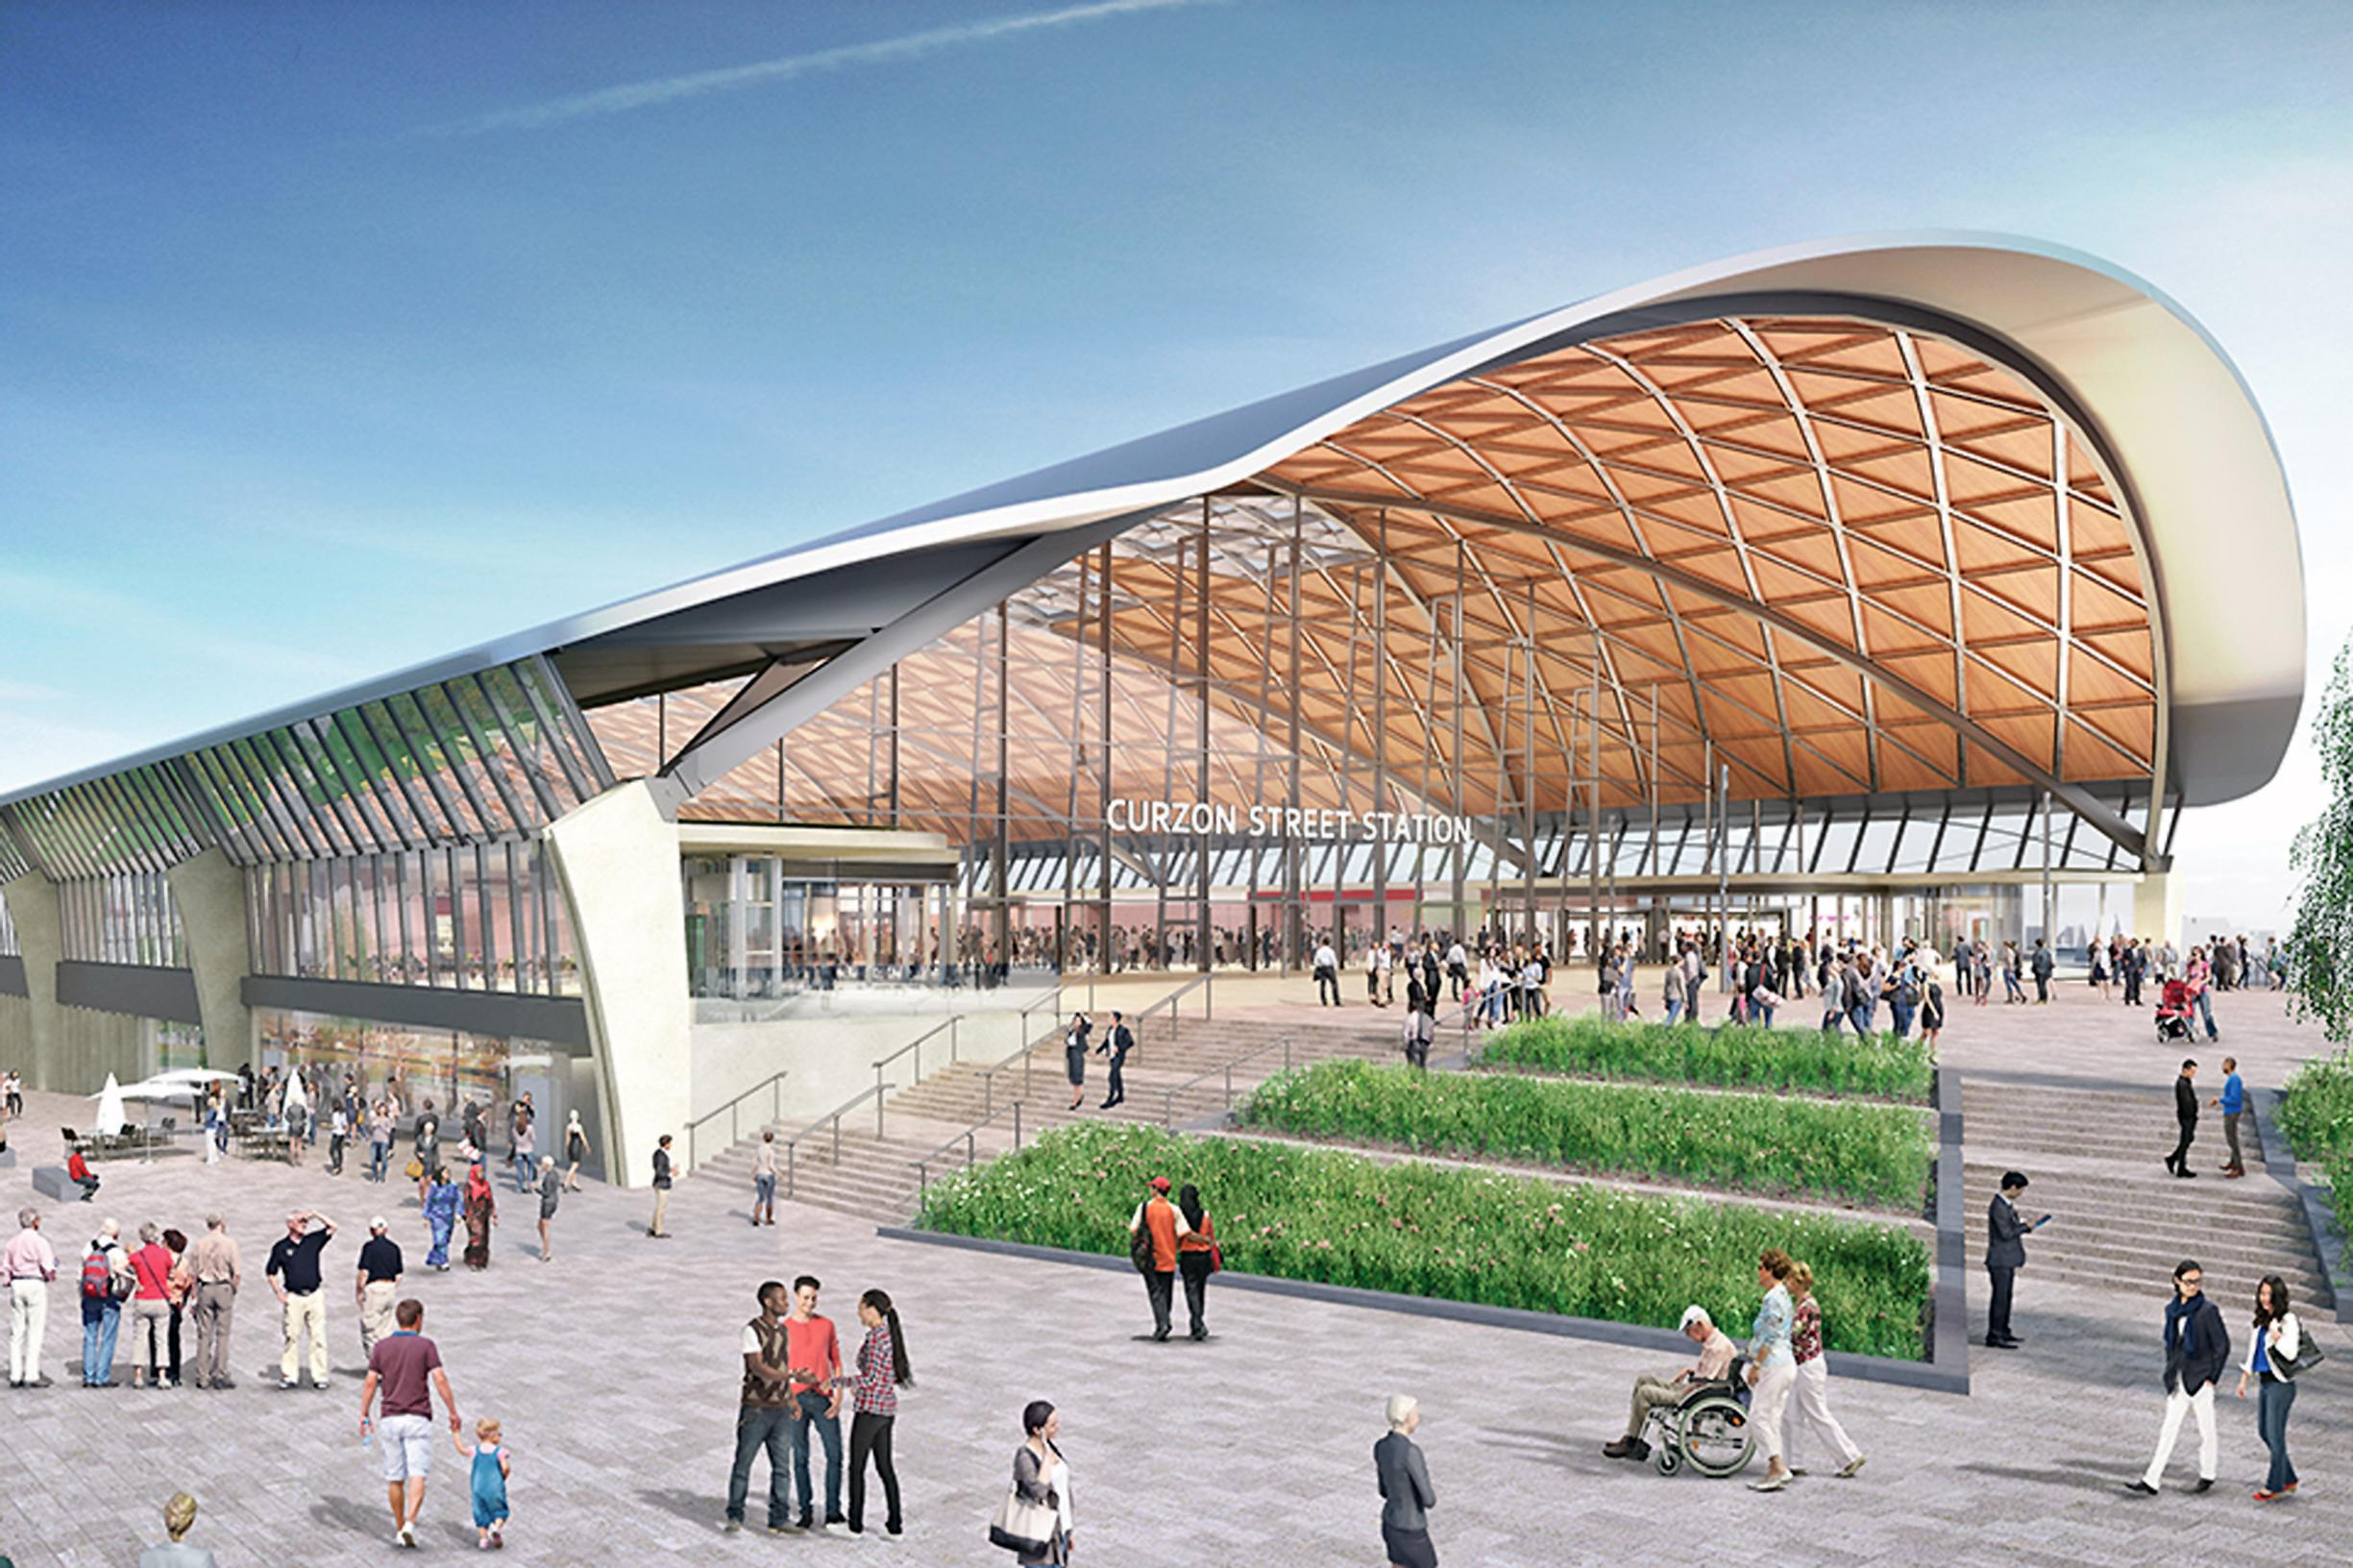 HS2 could change land values for 'over a century'